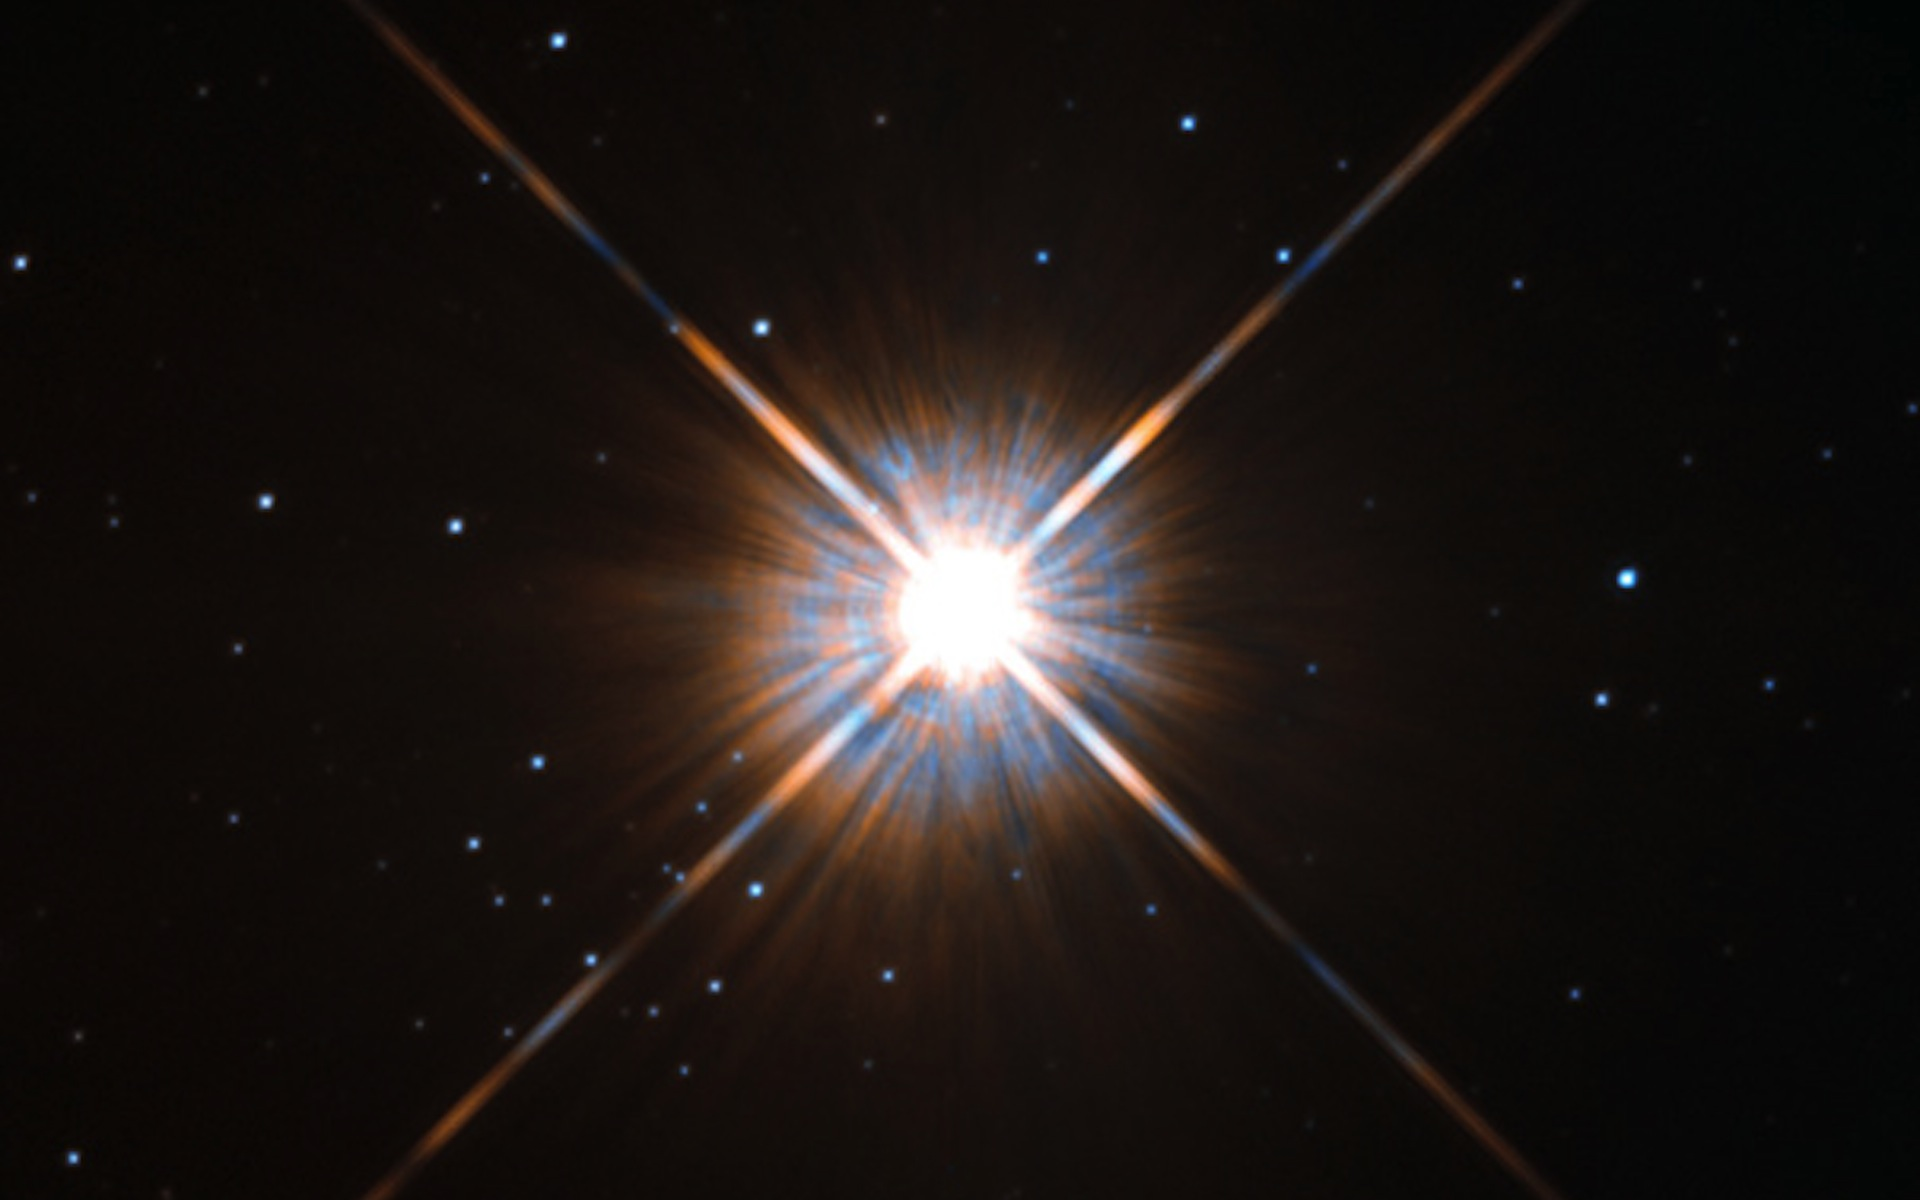 Proxima Centauri, Nearest Star to Sun, Seen by Hubble Telescope (Photo)